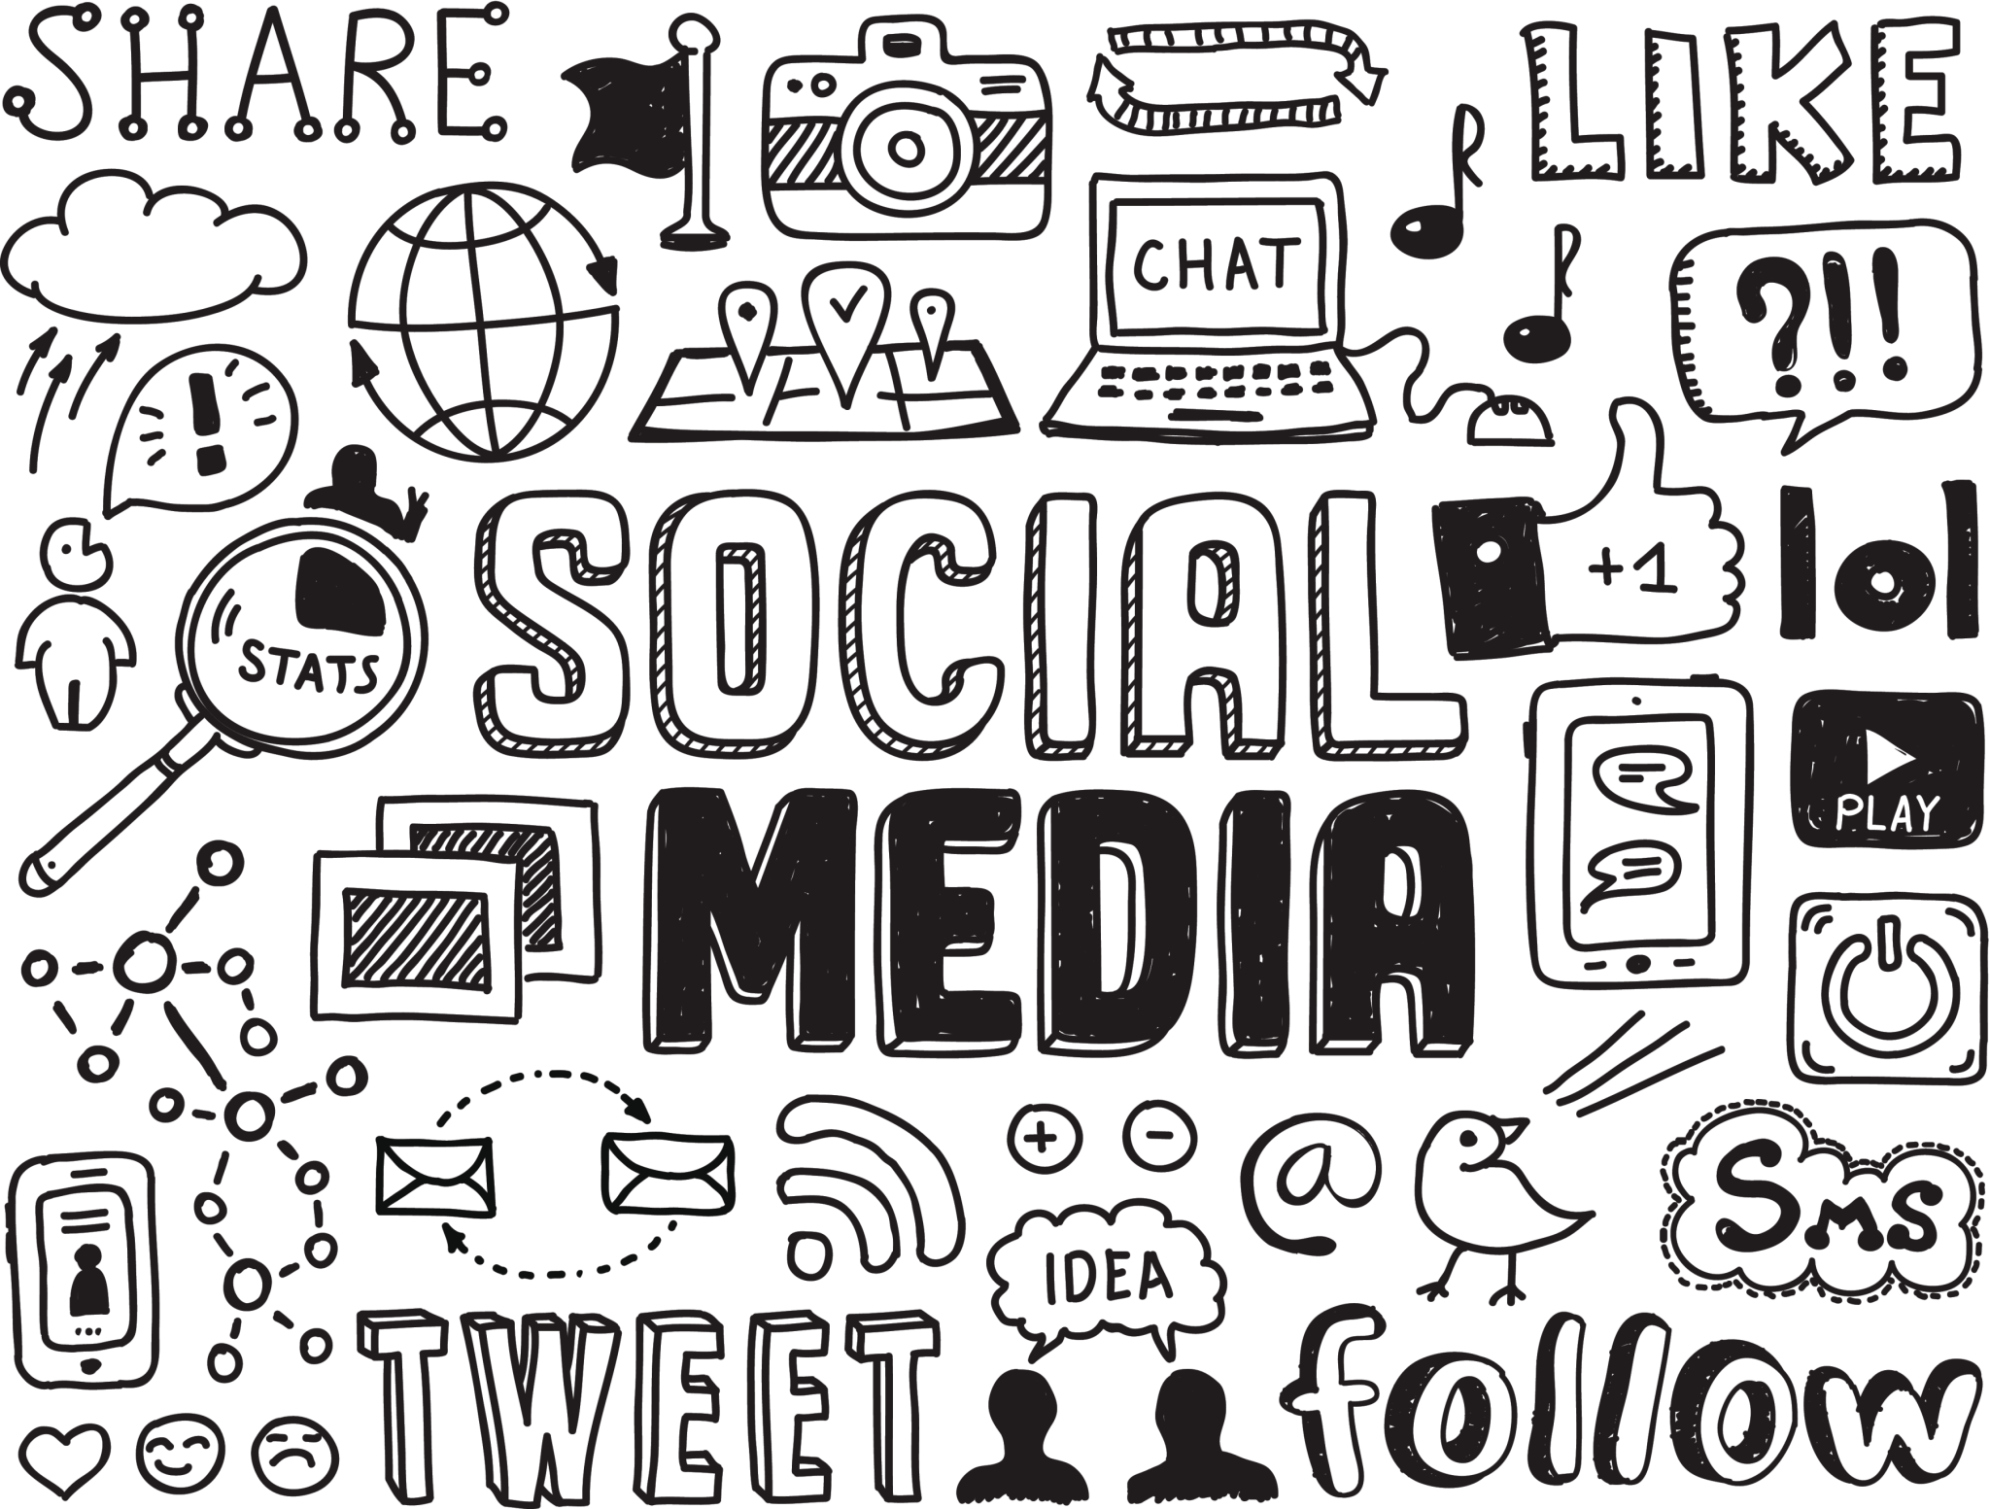 Social media clipart black and white image royalty free library Managing Social Media Clip Art – Clipart Free Download image royalty free library